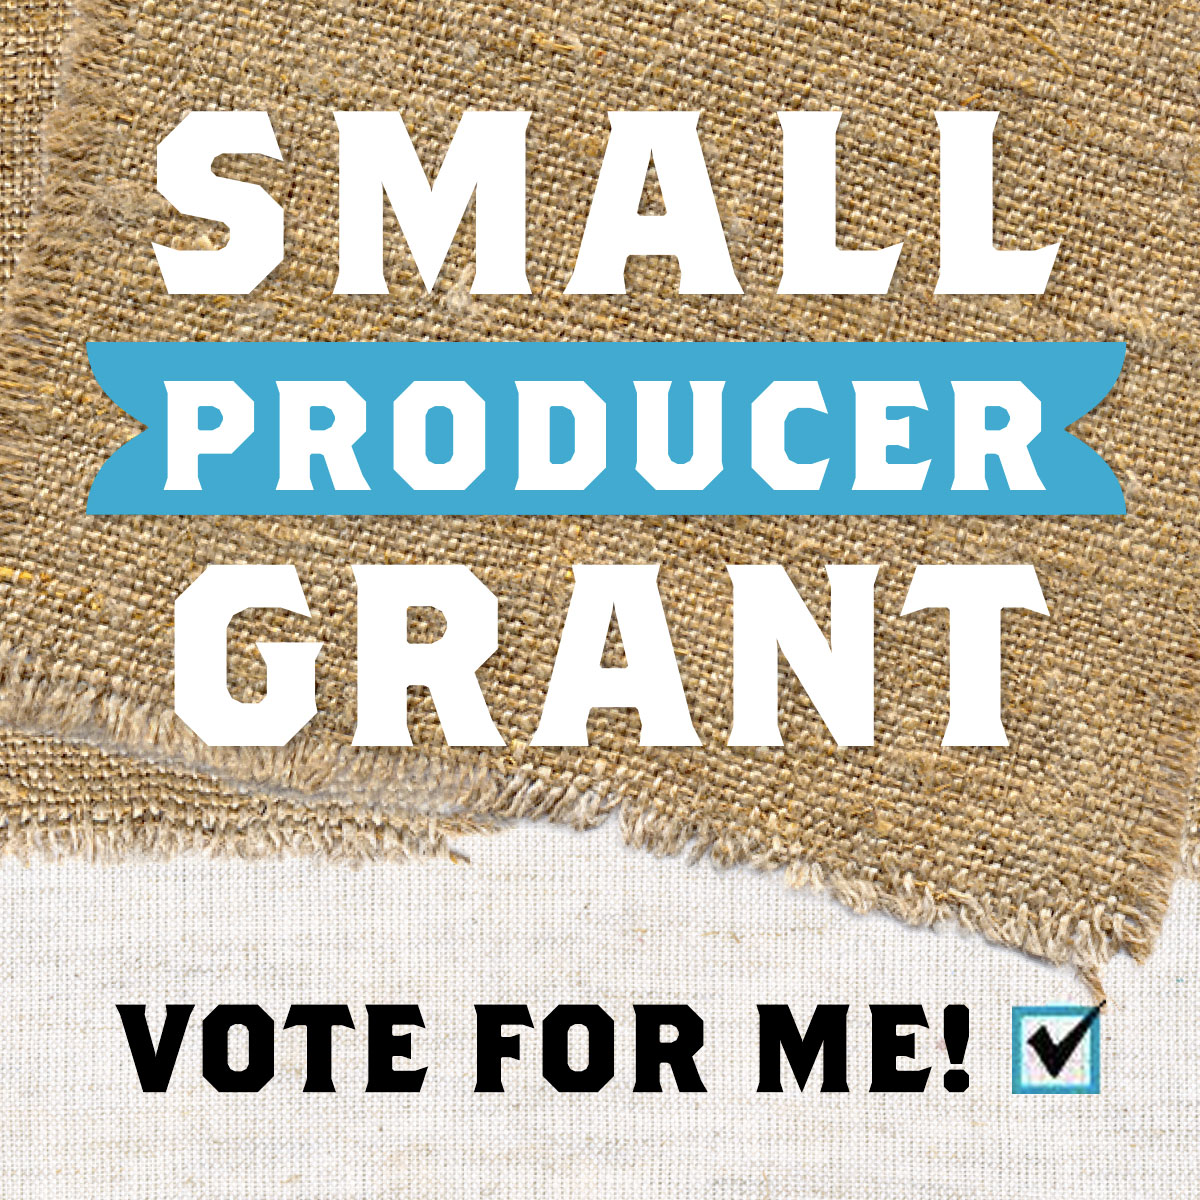 2015 P S You Are Here Grant Recipients: Boncora Is A Finalist For A Whole Foods Small Producer